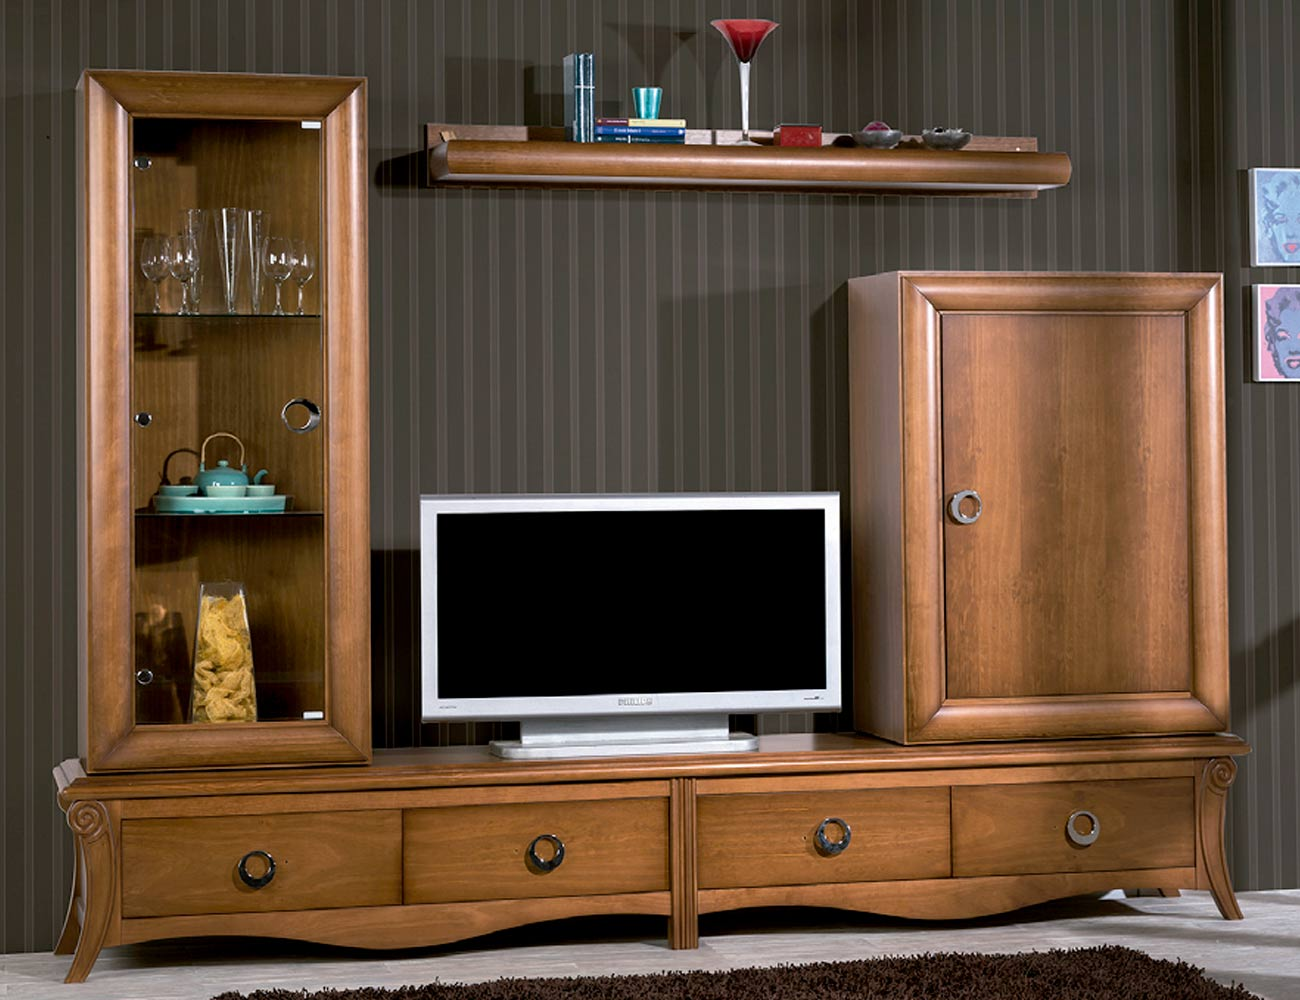 Mueble salon neoclasico color 152